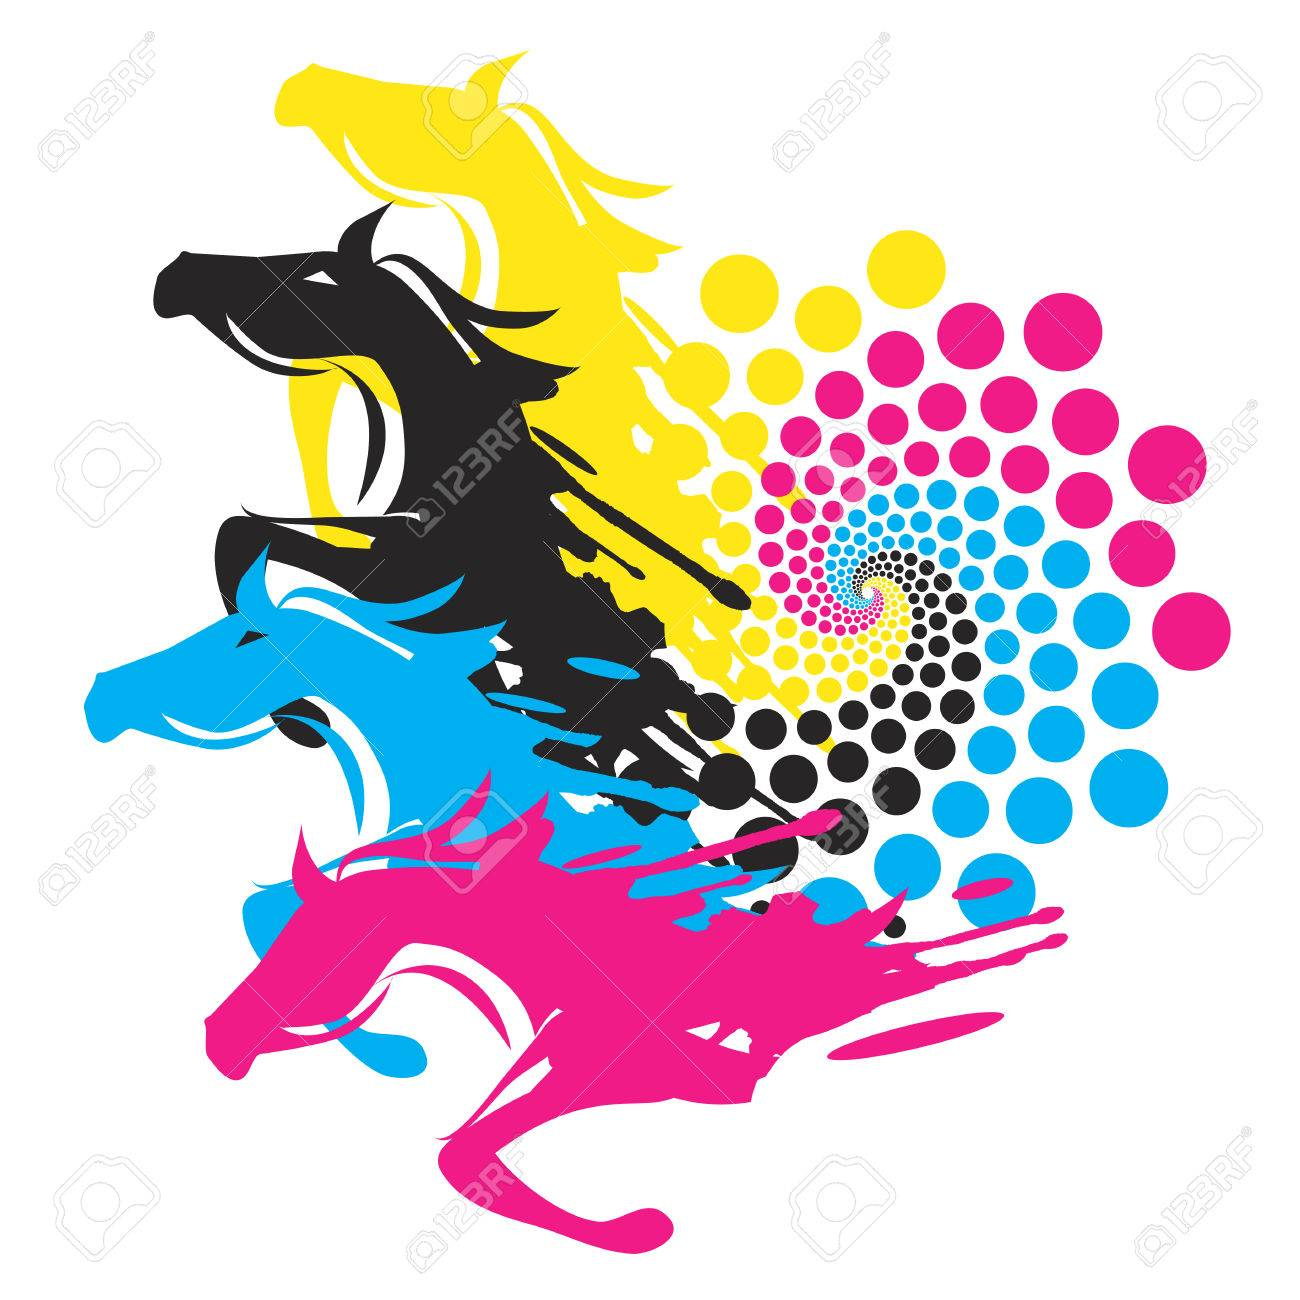 horses with print color circle four running horses with the circle of the print colors